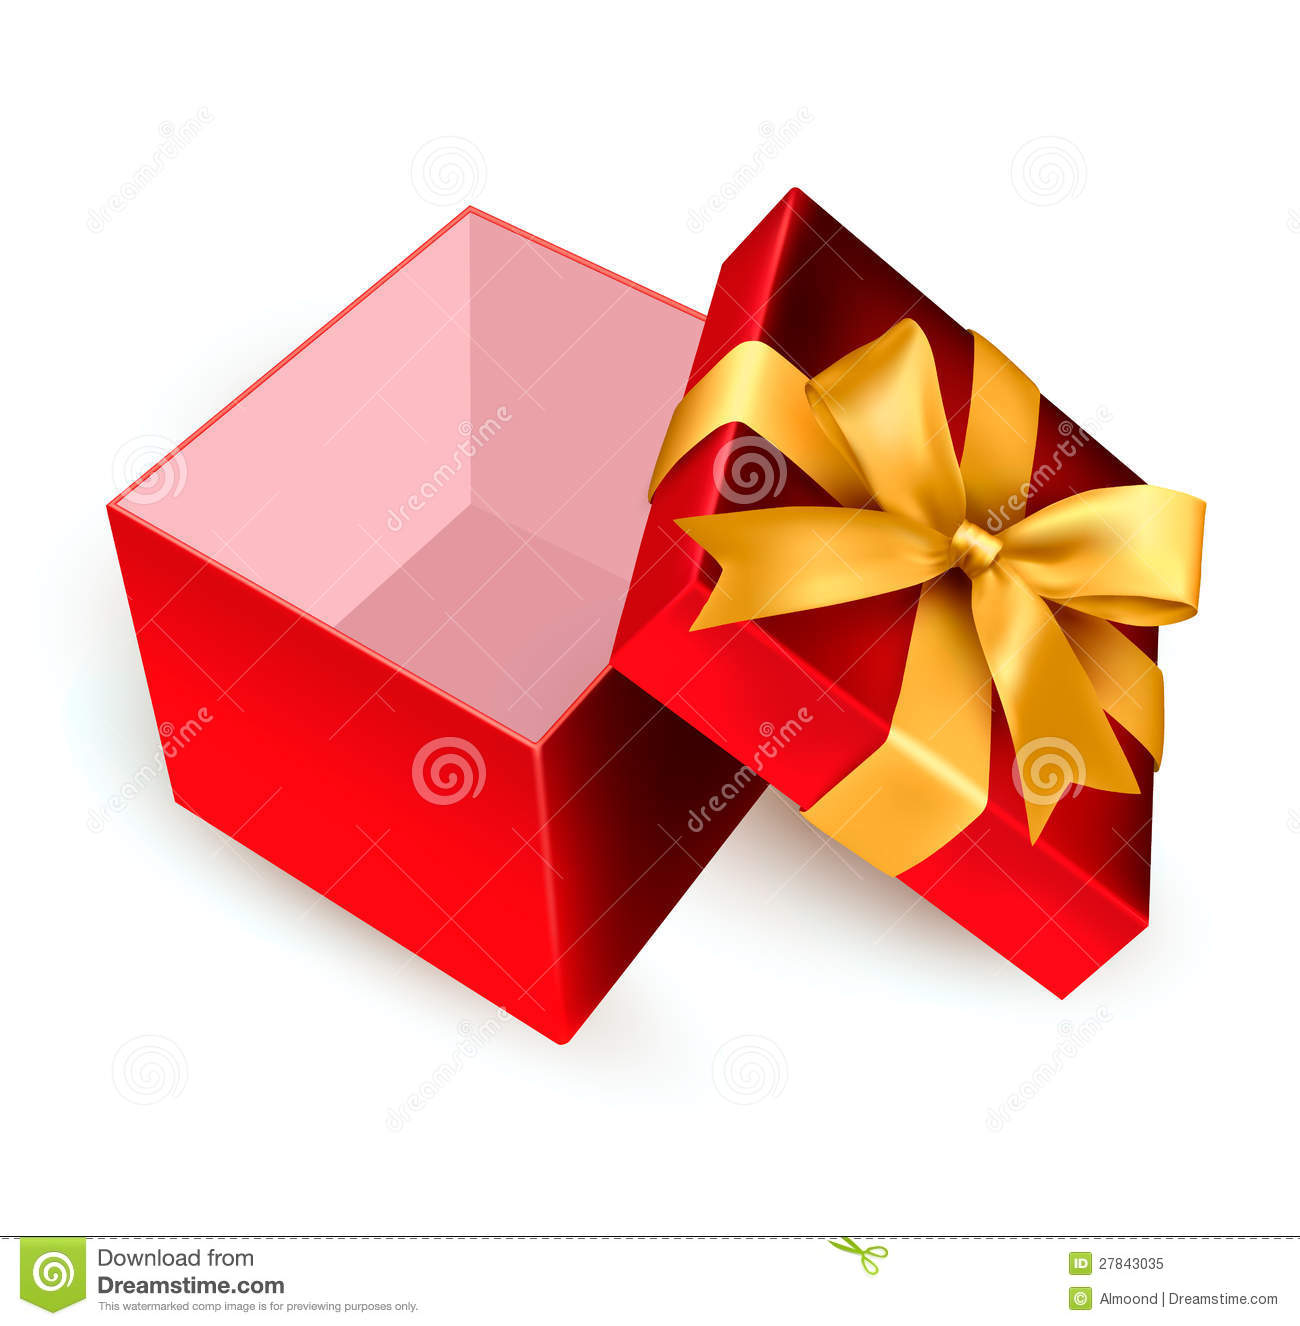 Open Red Gift Box Royalty Free Stock Photo - Image: 27843035